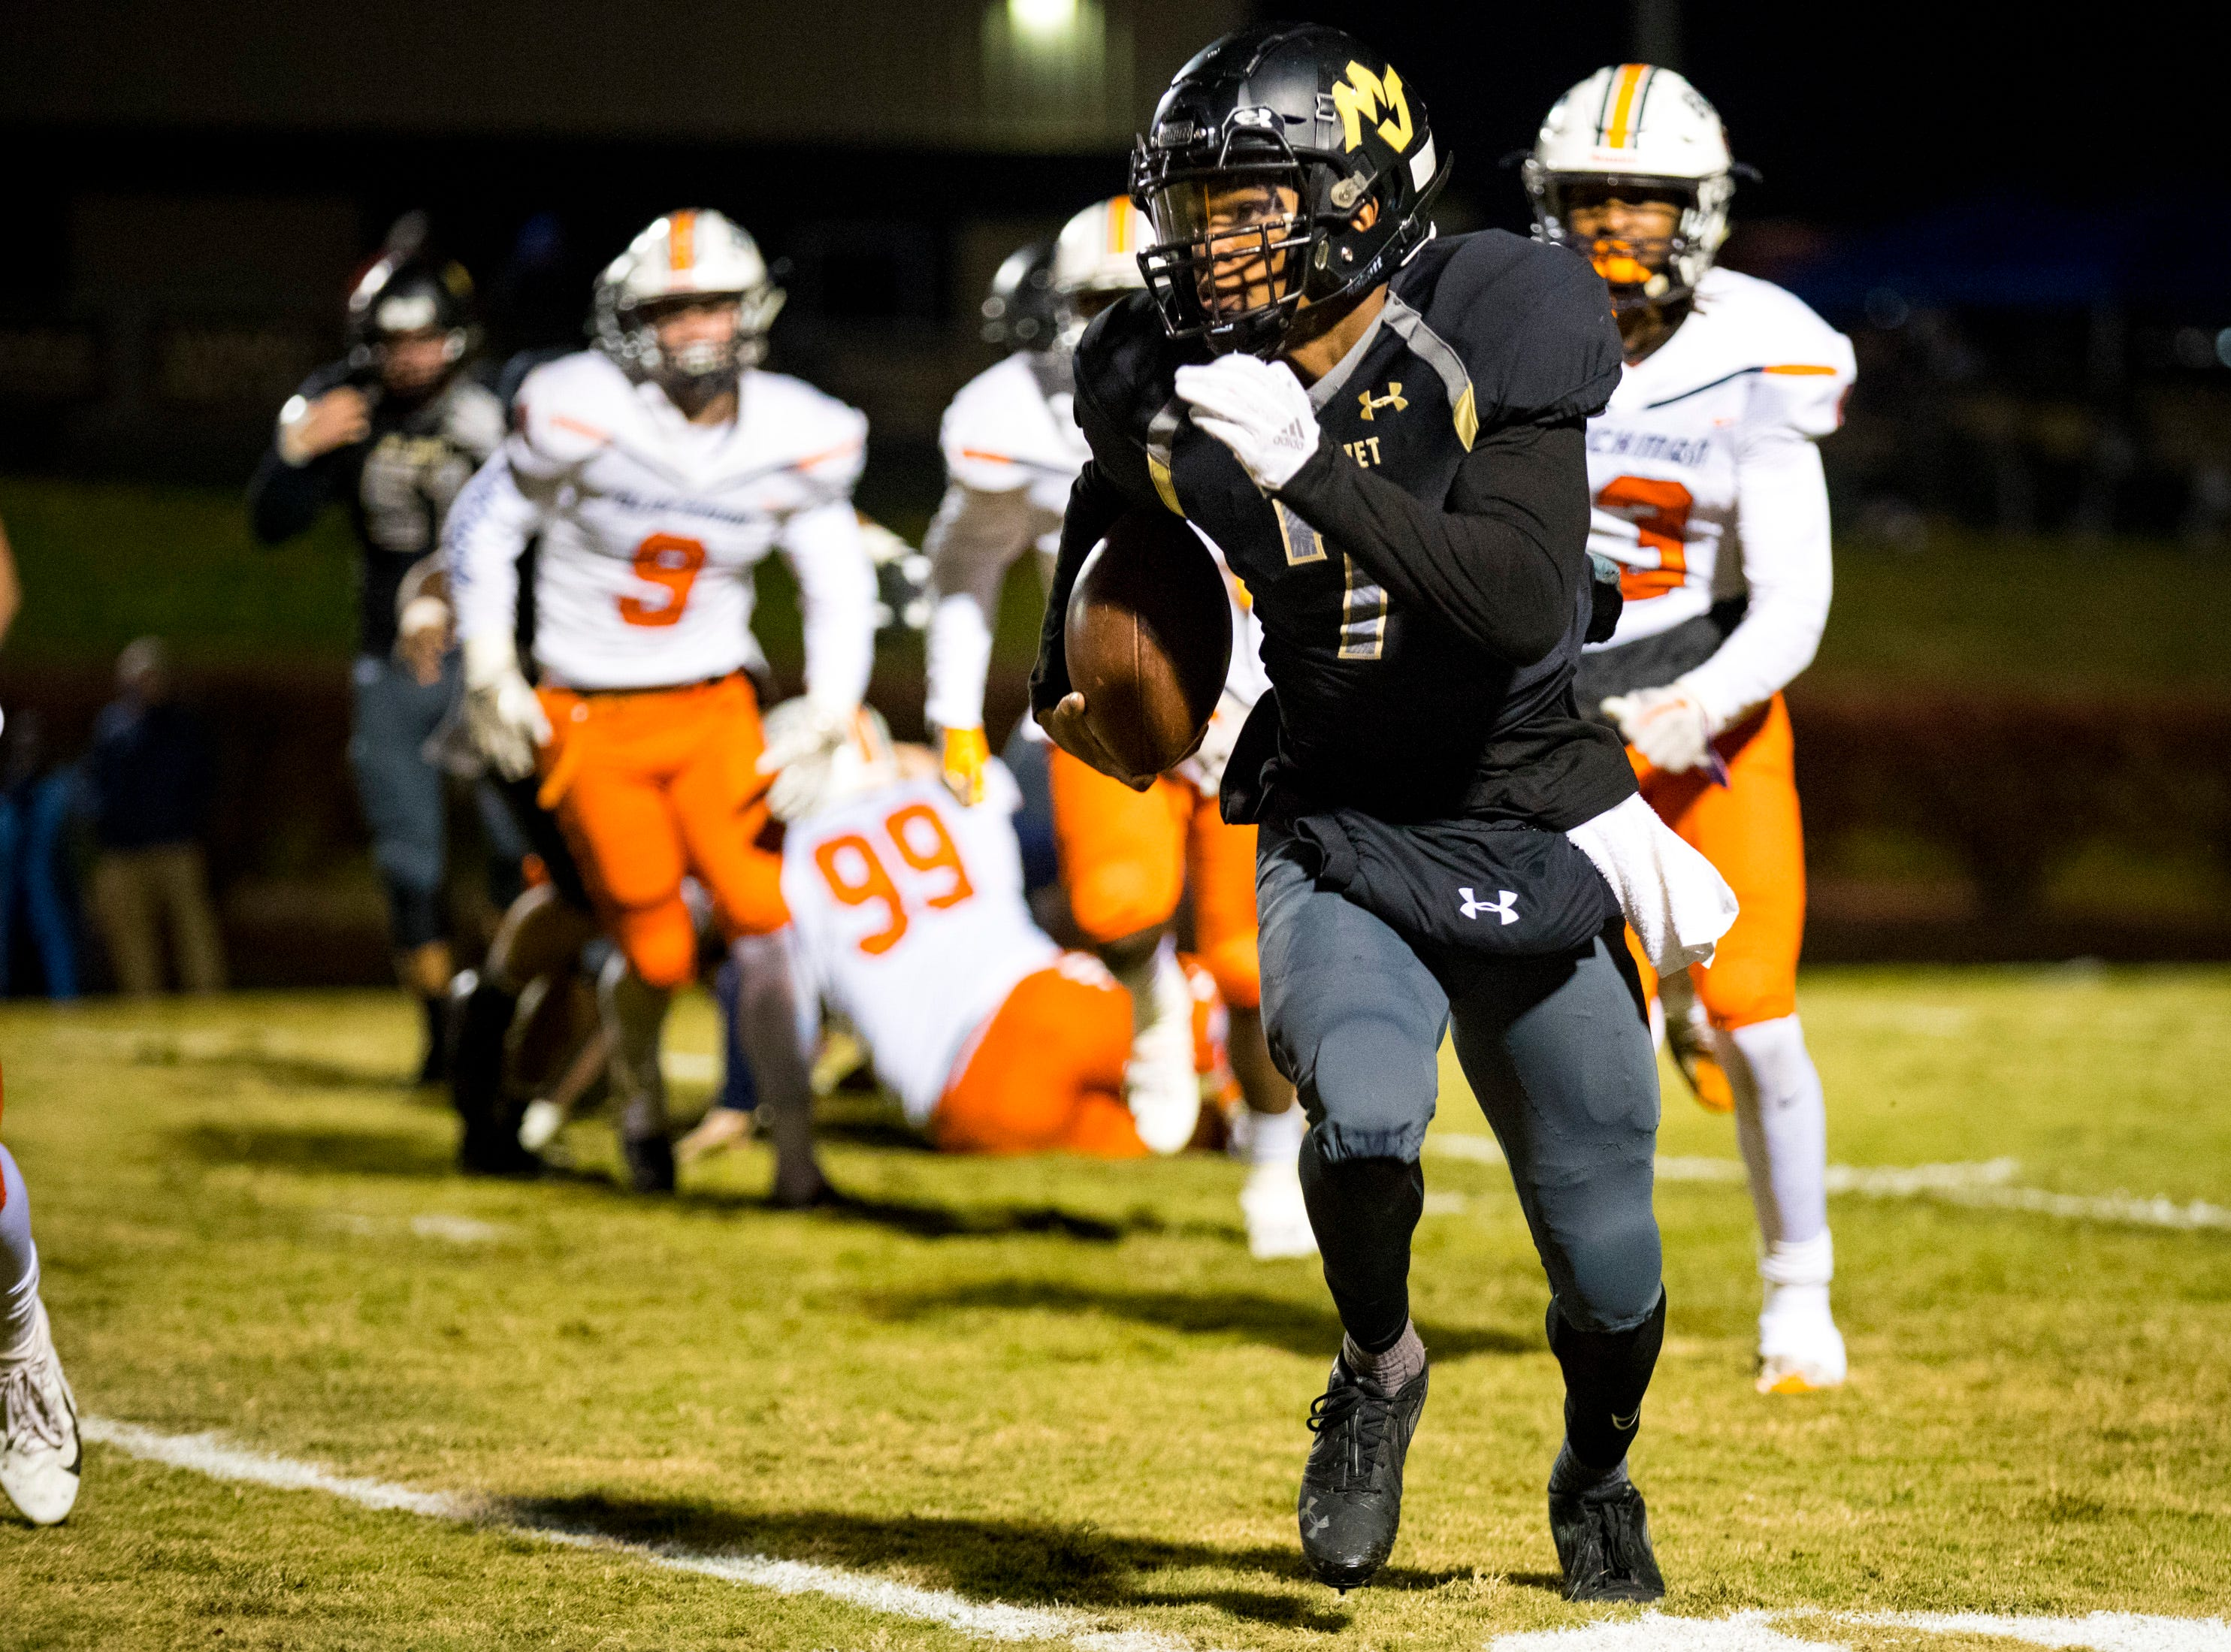 Mt. Juliet's Alvin Mixon (7) carries the ball during Mt. Juliet's game against Blackman at Mt. Juliet High School in Mt. Juliet on Friday, Nov. 9, 2018.